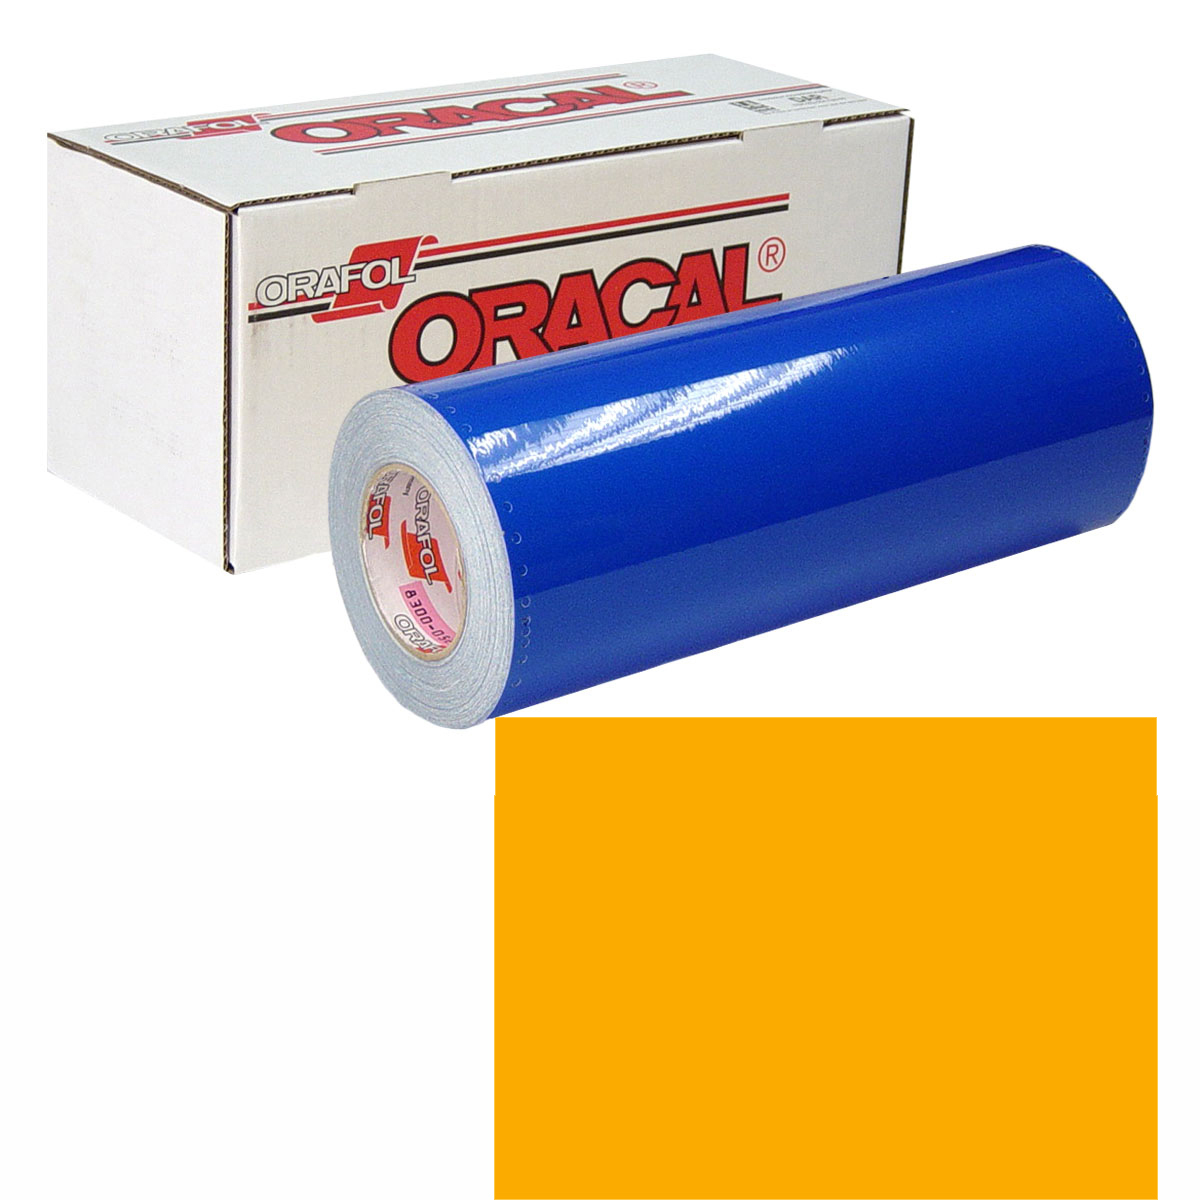 ORACAL 631 Unp 30in X 50yd 020 Golden Yellow